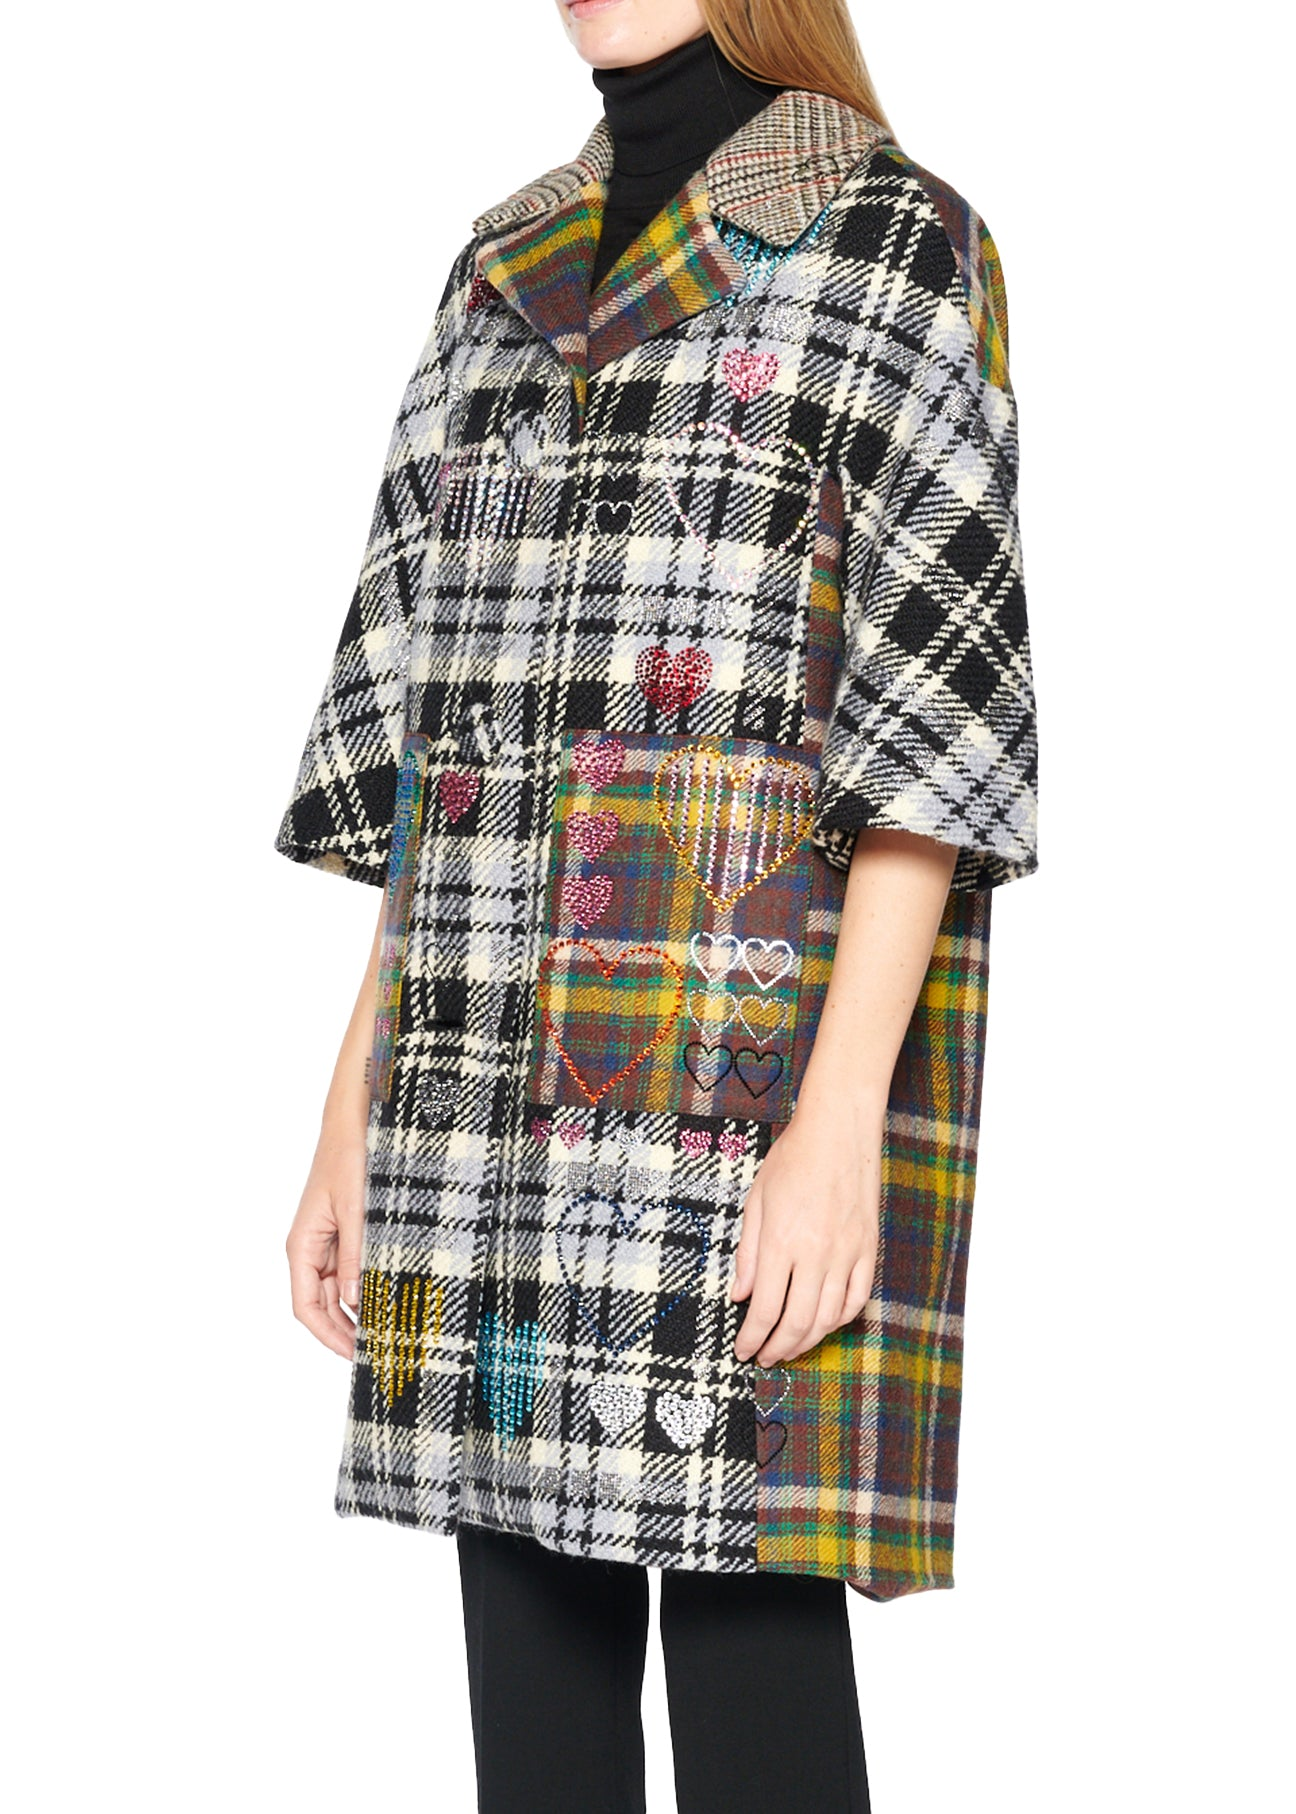 PLAID COMBO COAT WITH CRYSTALS - Women's Jackets & Coats - Libertine